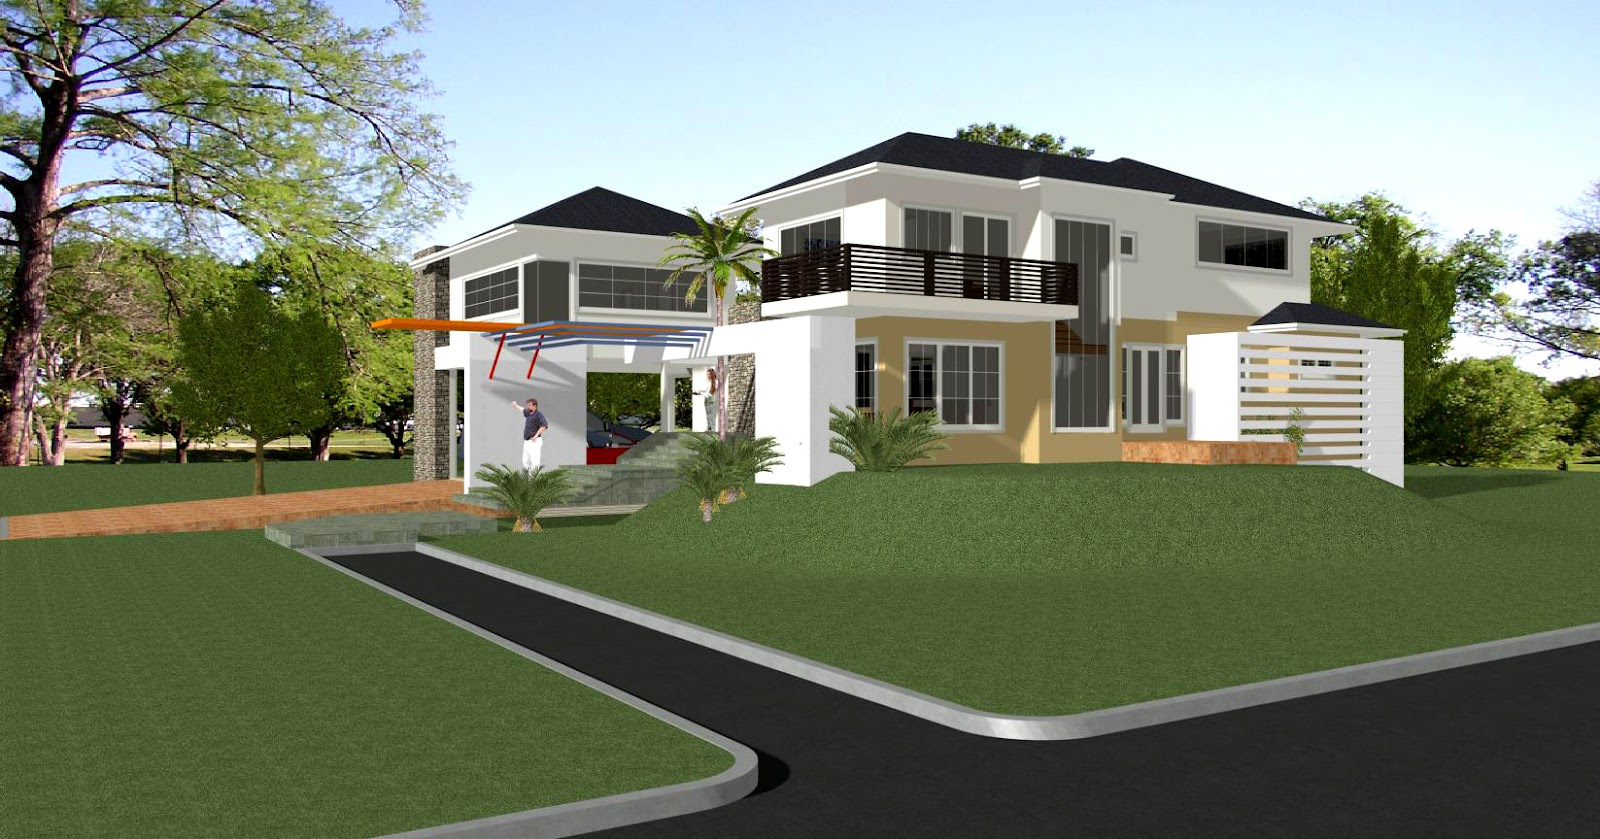 Dream home designs erecre group realty design and Create dream home